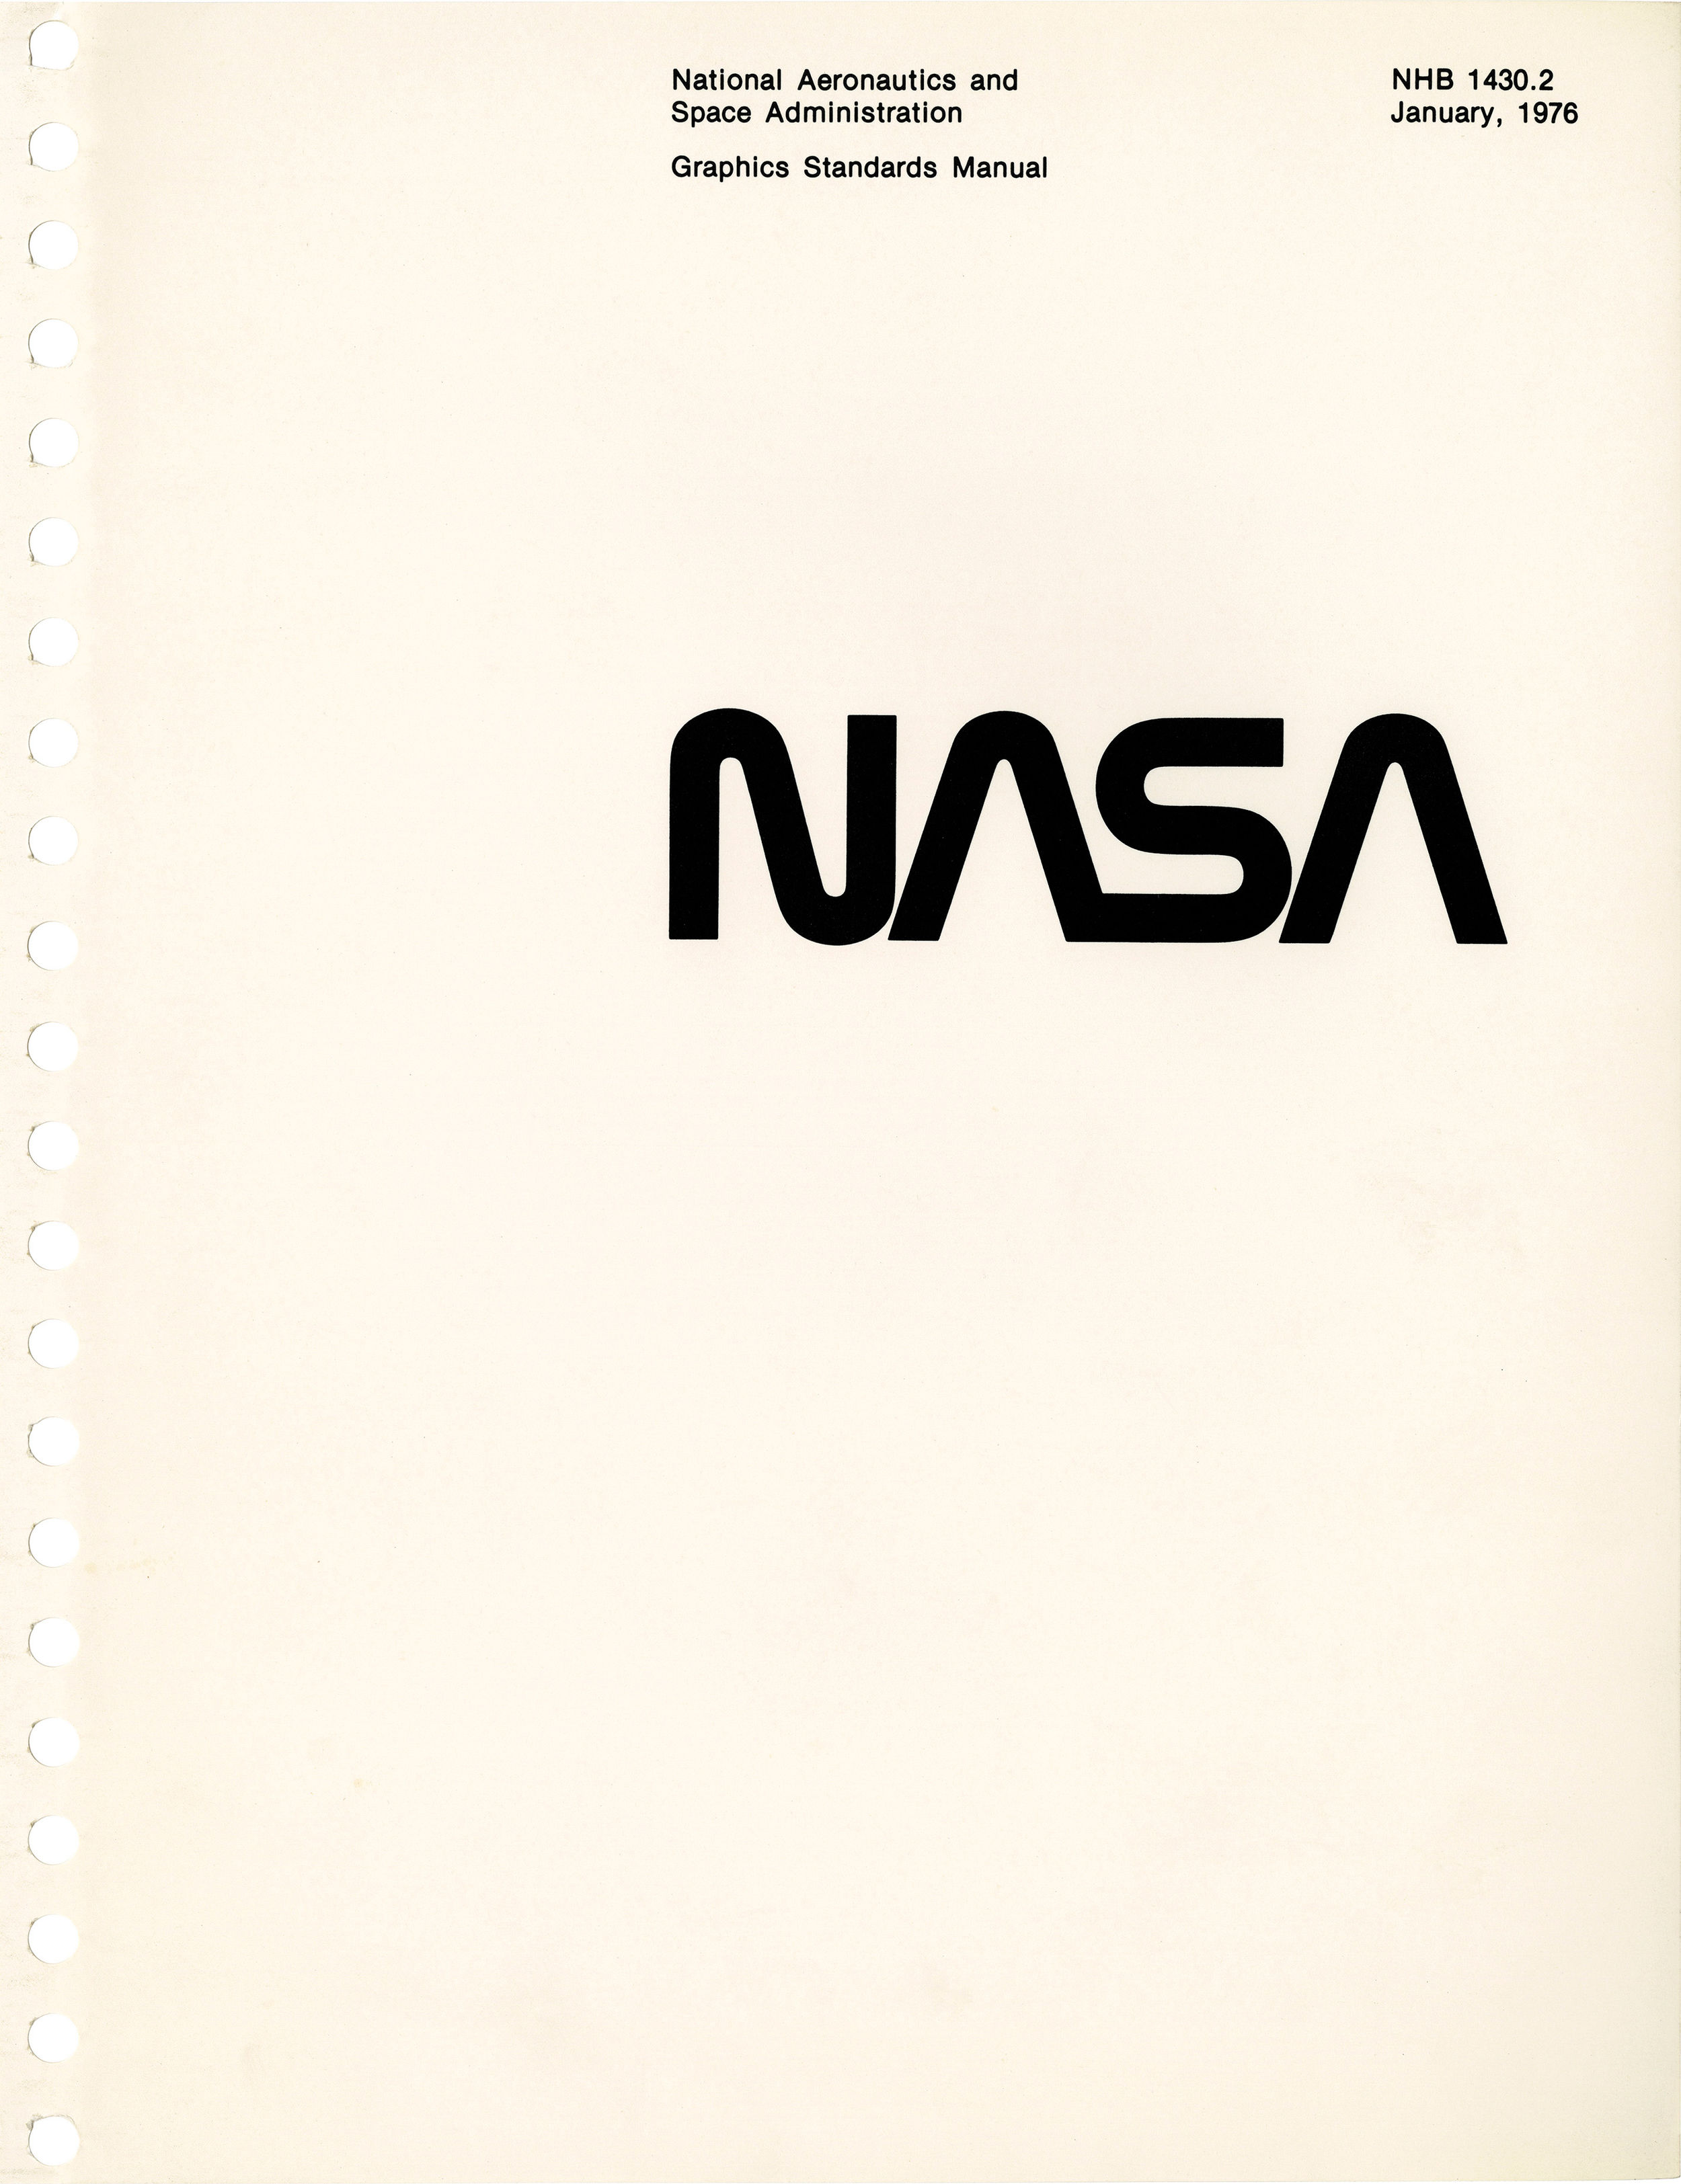 NASA publications manual